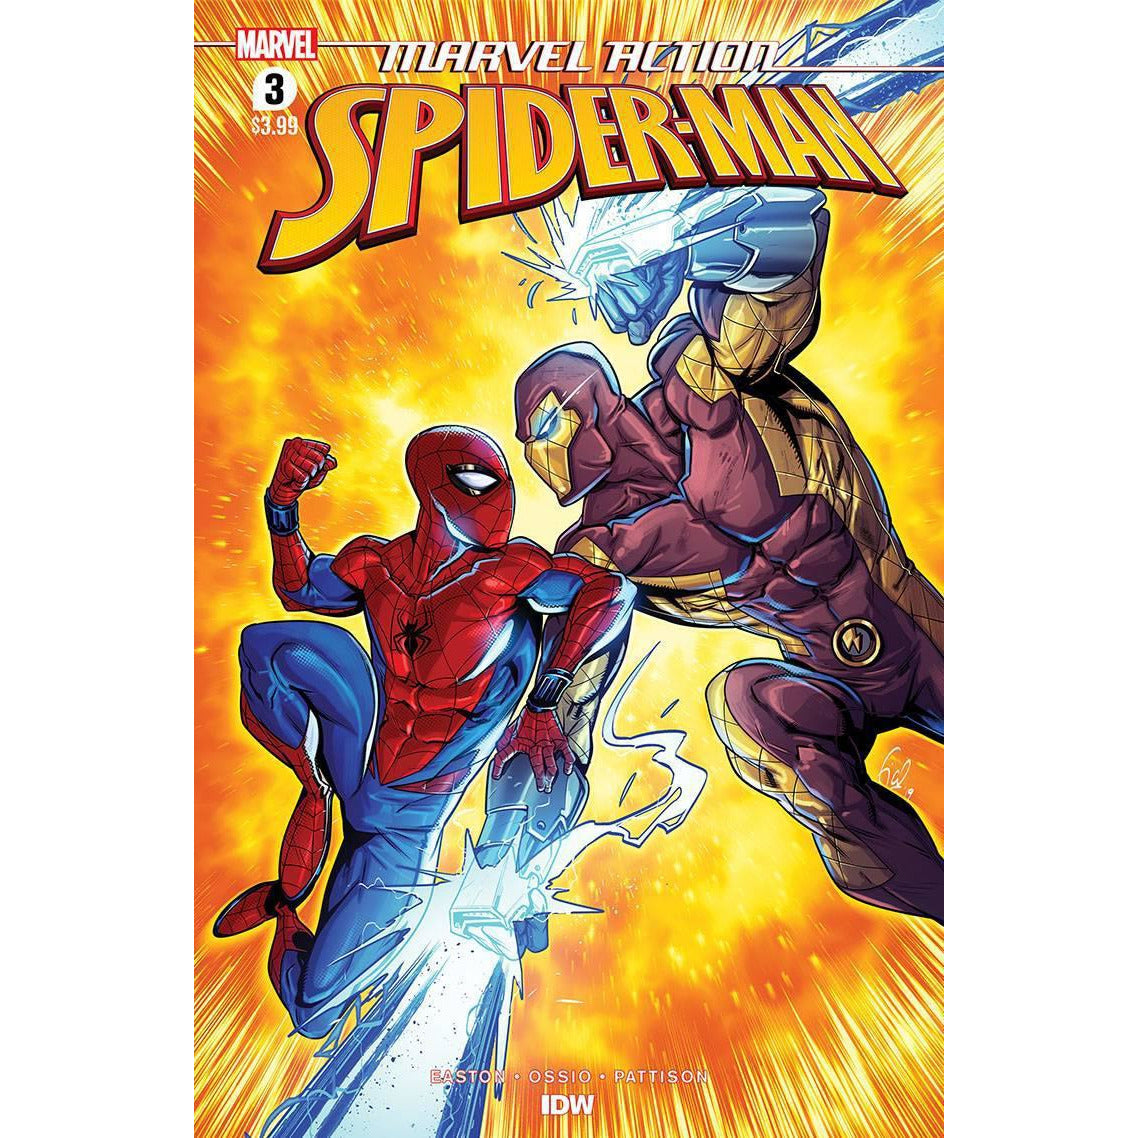 MARVEL ACTION SPIDER-MAN (2020) #3 - OSSIO MAIN COVER